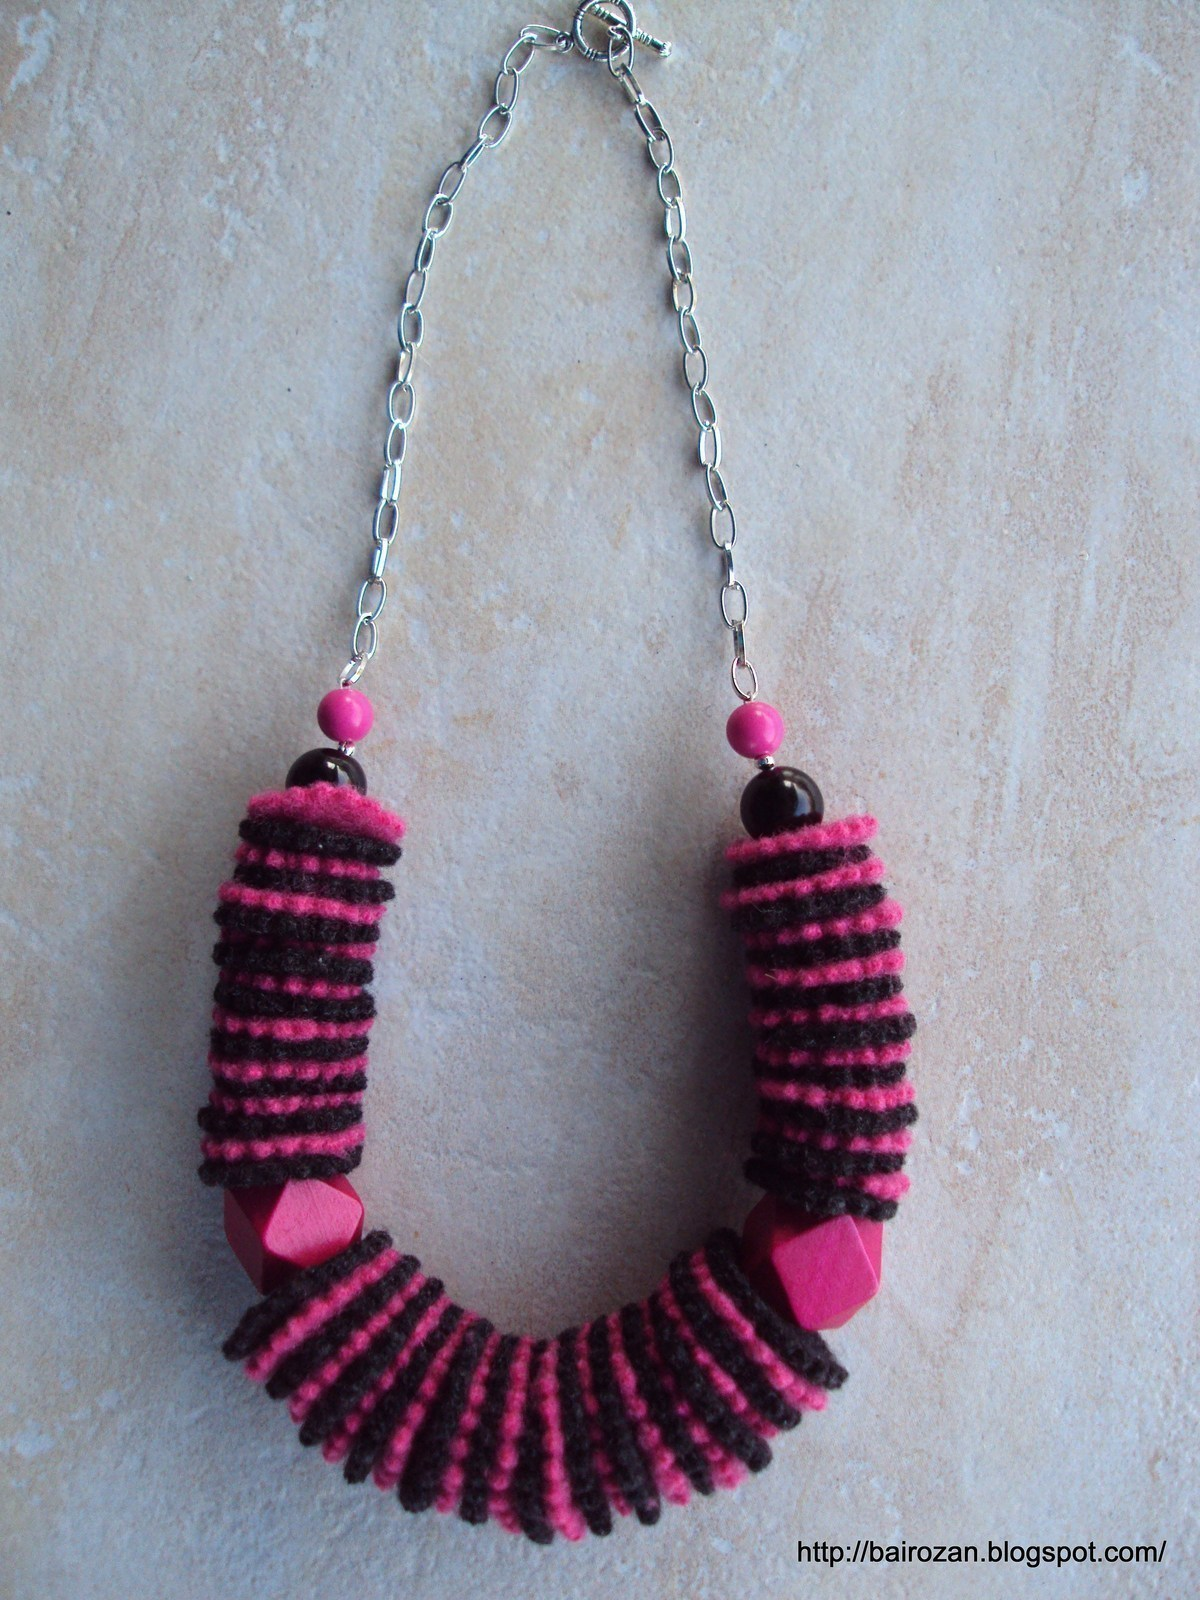 Felt Necklaces From Recycled Clothes 183 A Fabric Necklace 183 Jewelry Making On Cut Out Keep